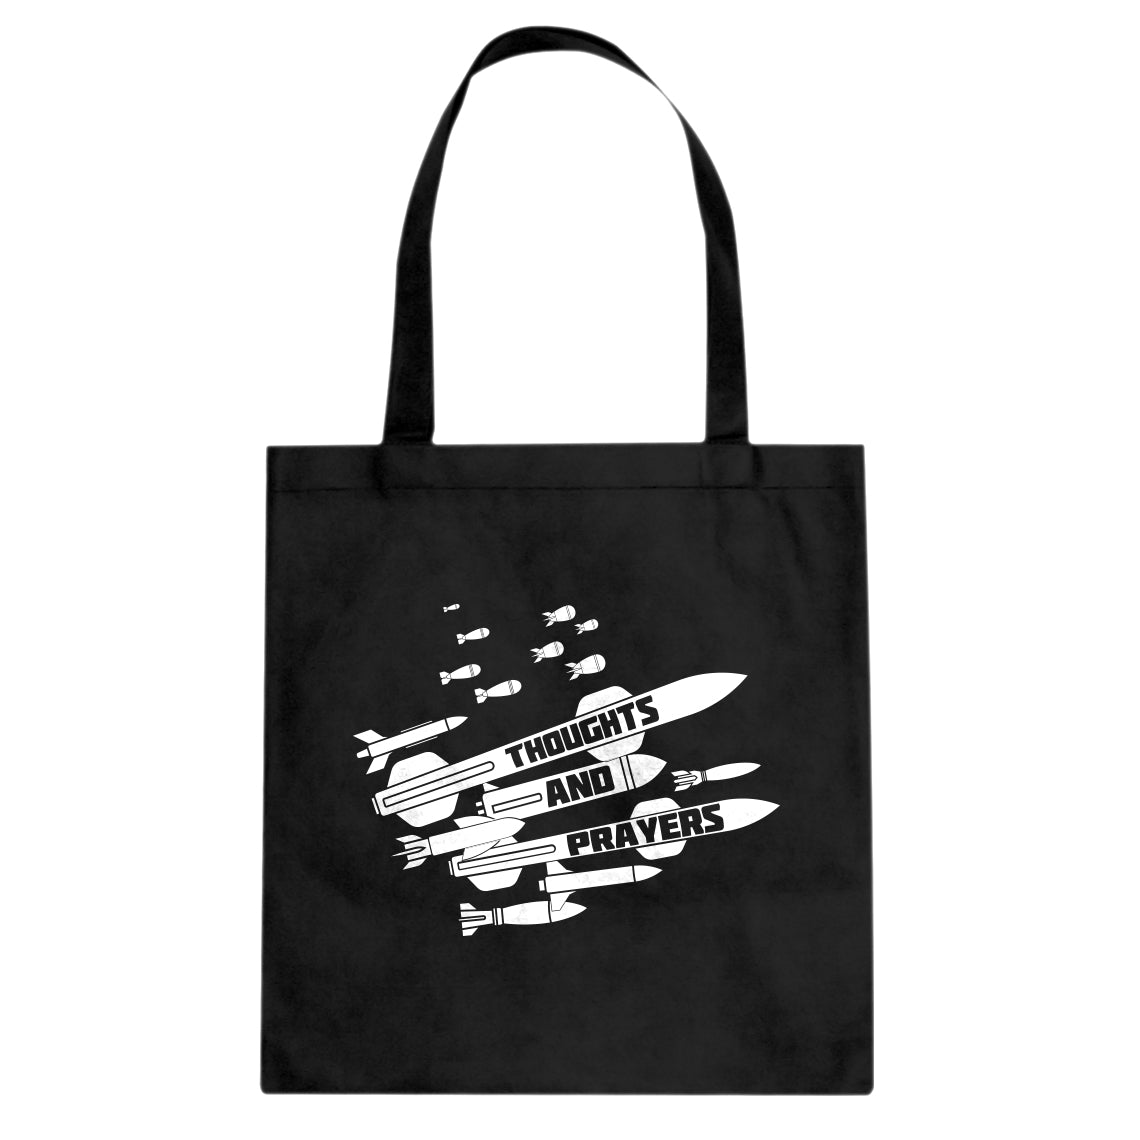 Tote Thoughts and Prayers Canvas Tote Bag